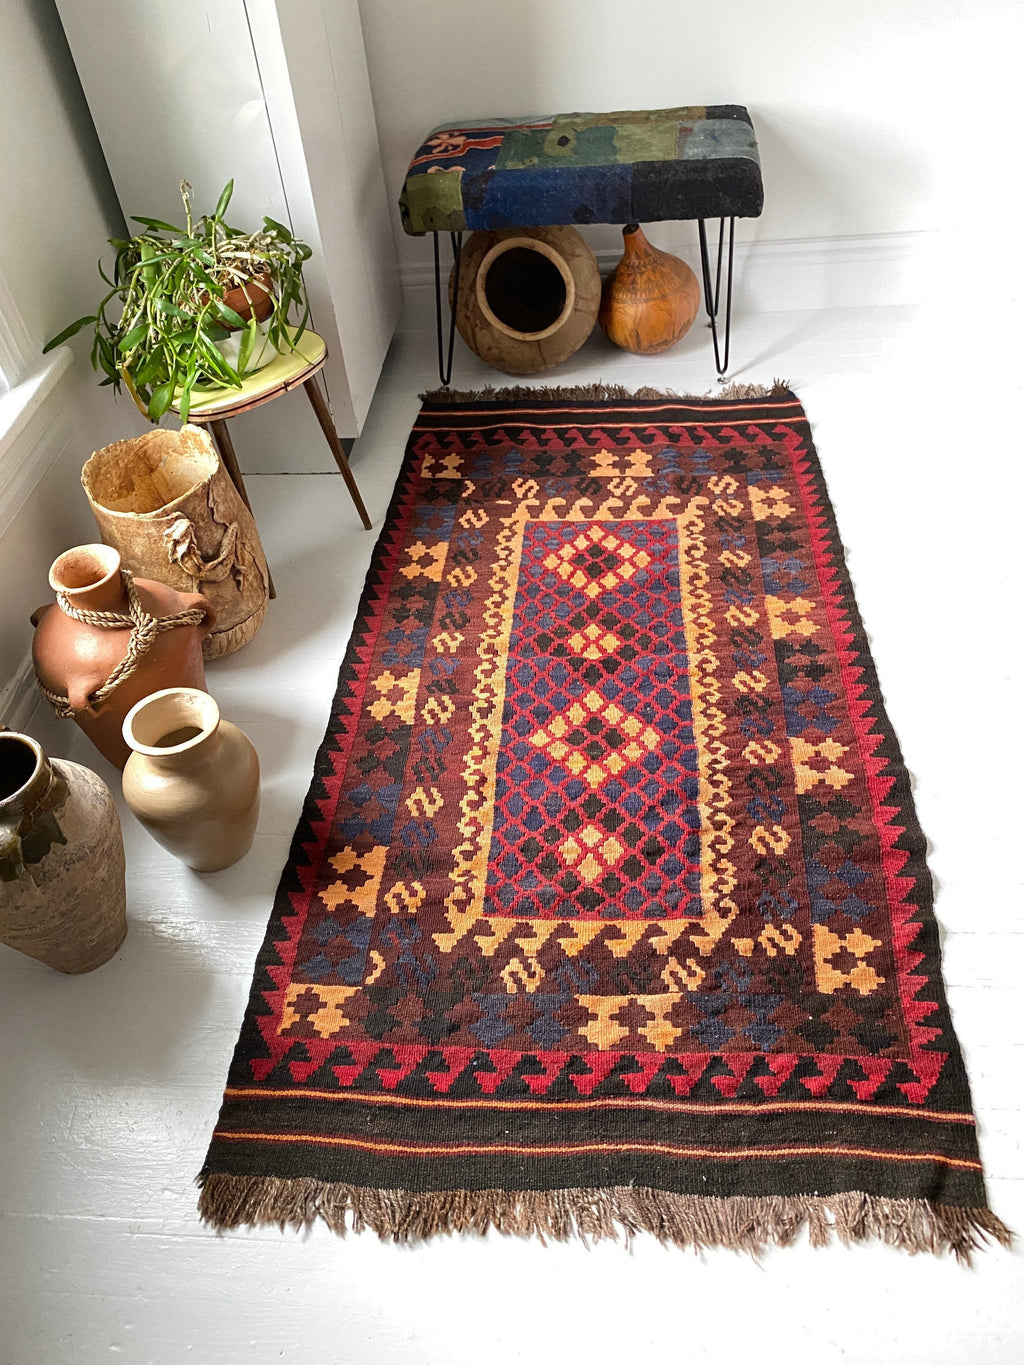 Mid Century Afghan Kilim Area Rug in Dark Reds, Blue Greys, and Browns.